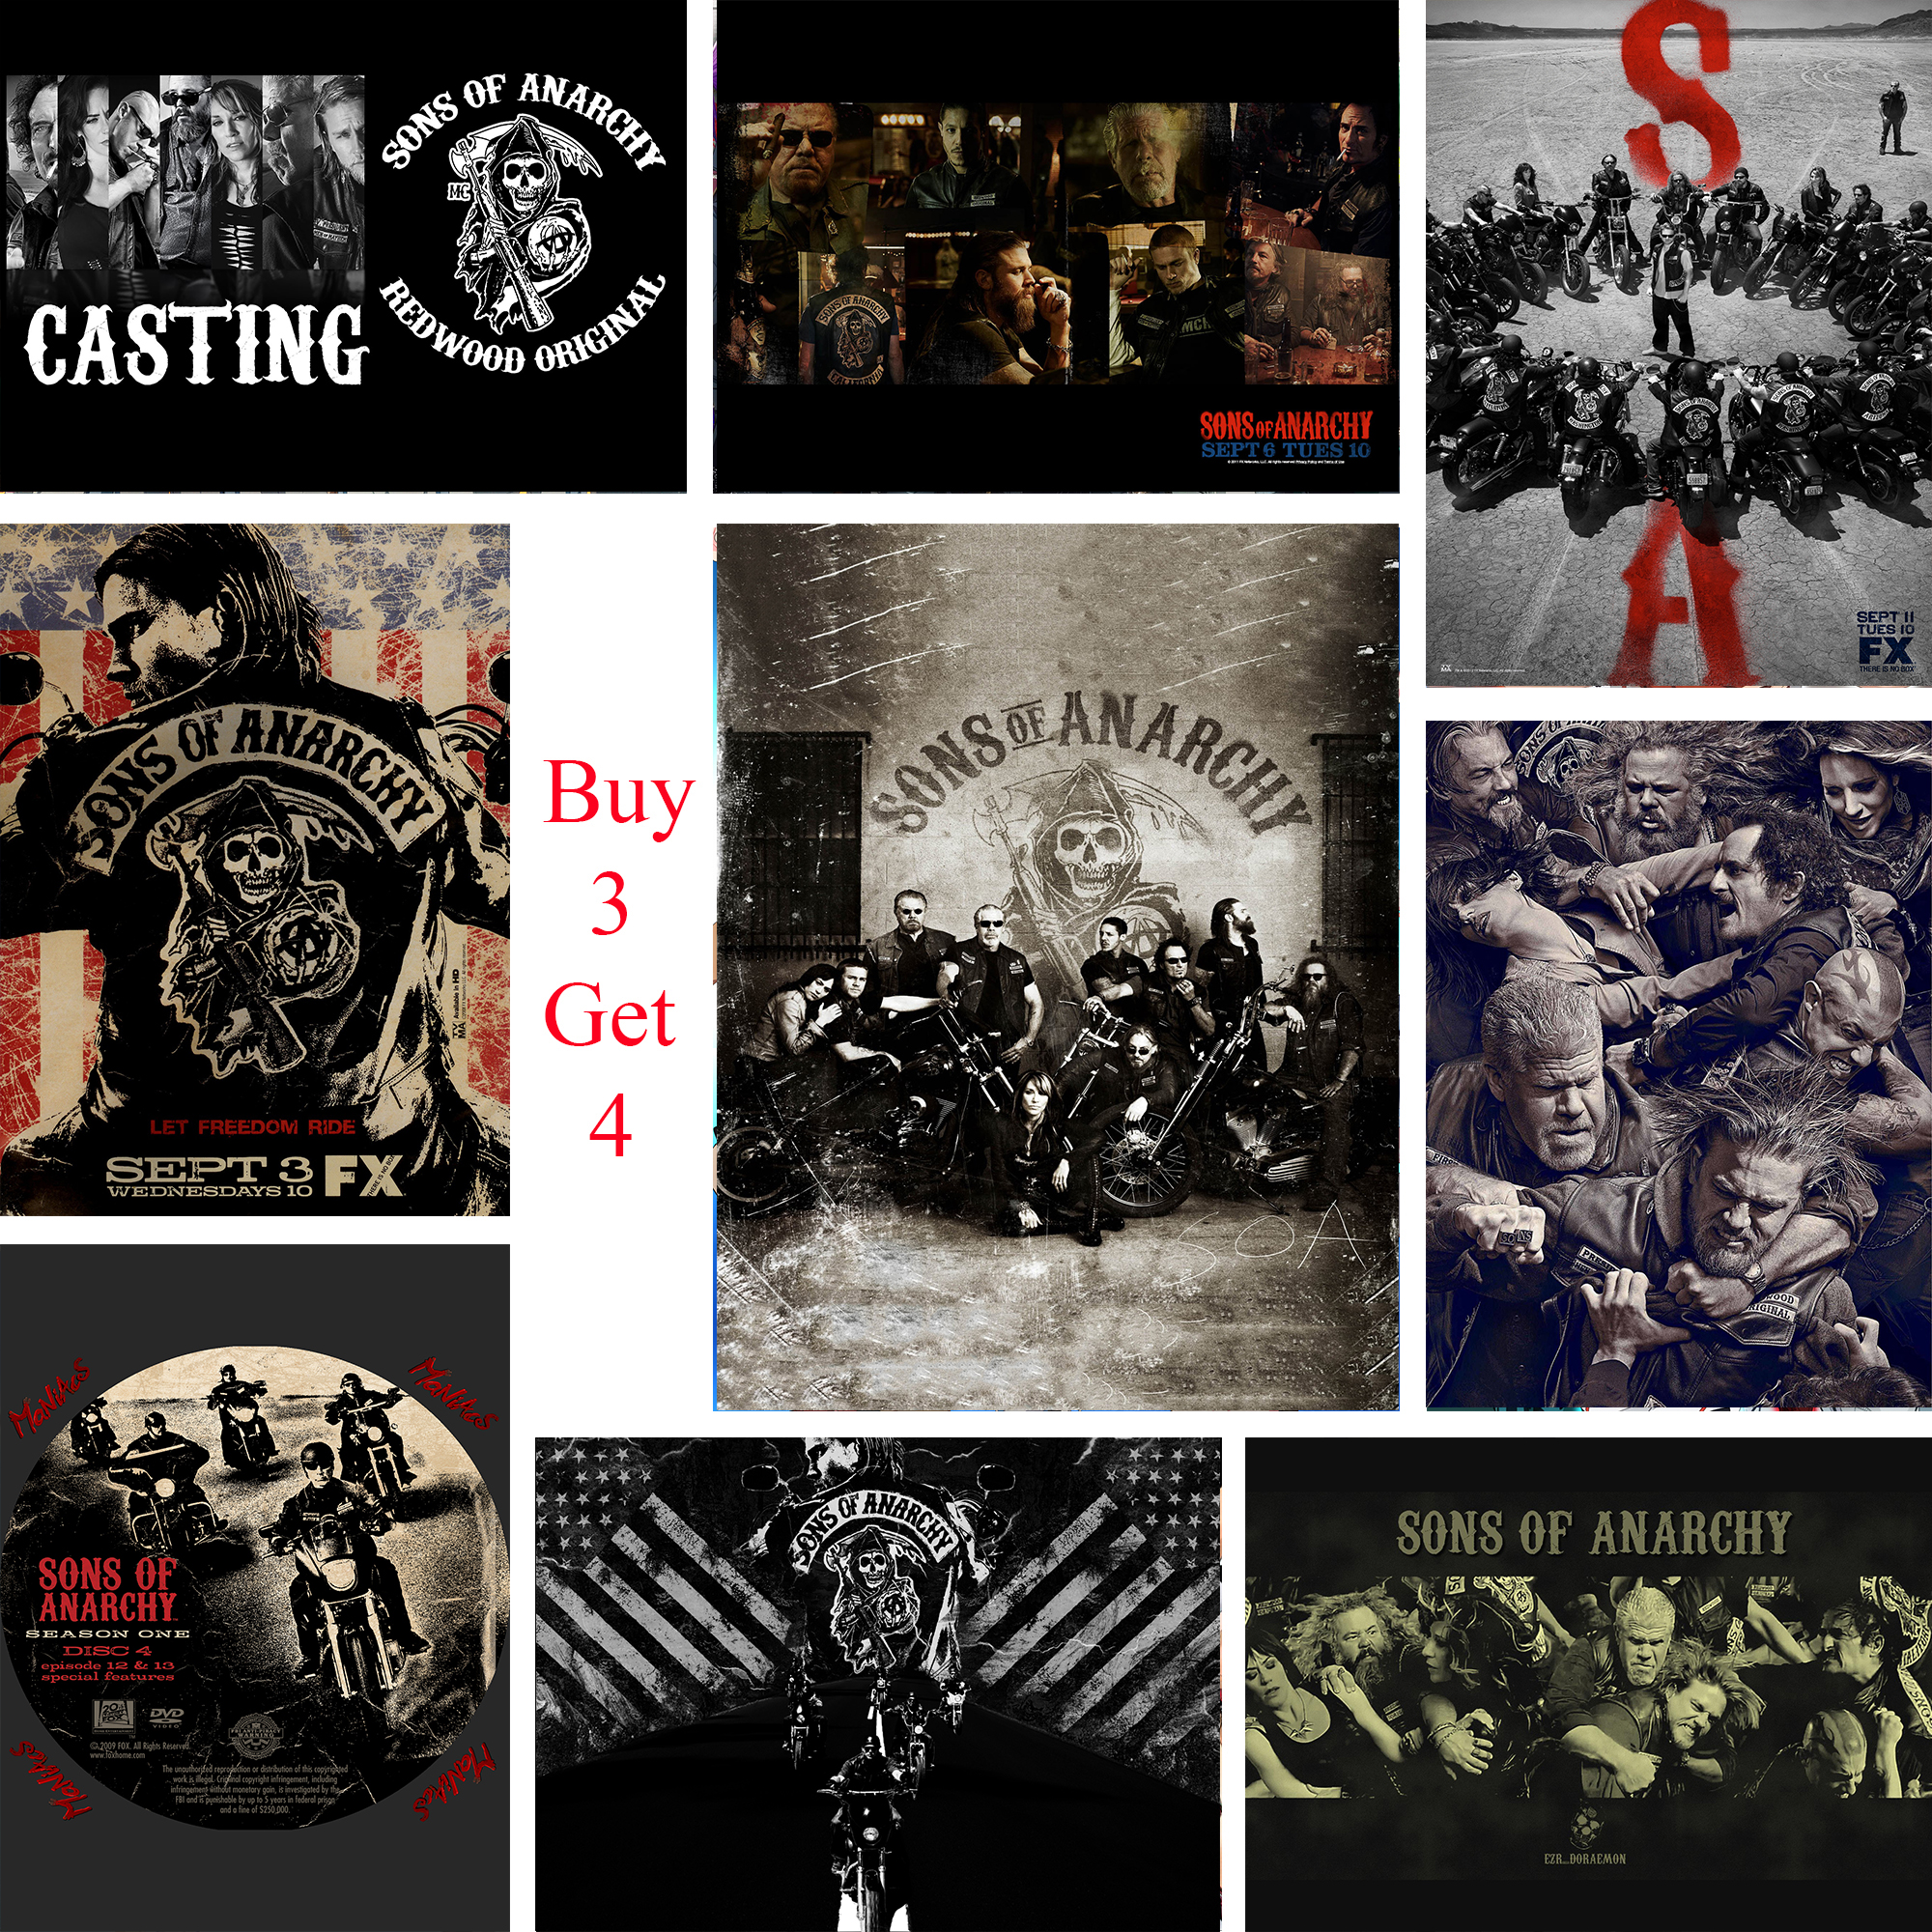 SONS OF ANARCHY POSTER Complete Series Season Wall Art Photo Print Poster A4 A3